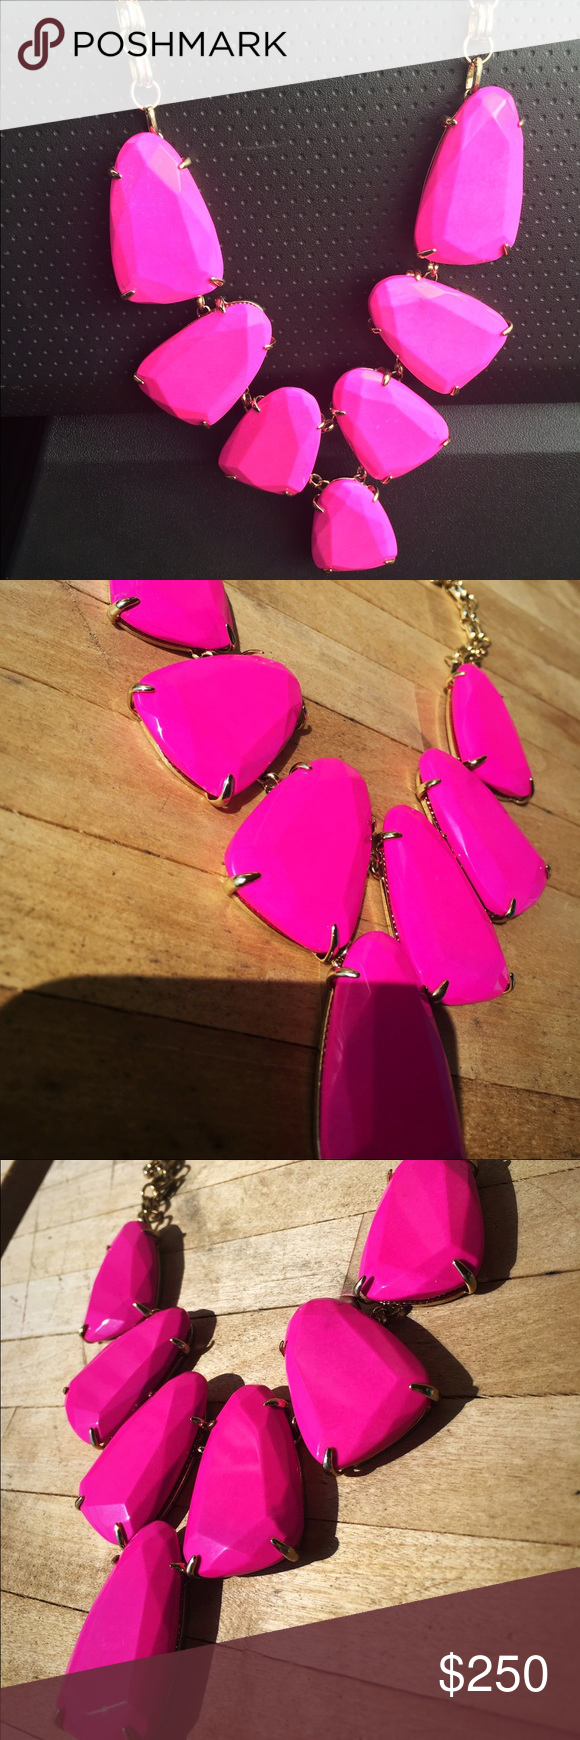 Kendra Scott magenta Harlow Magenta Harlow, nwot Perfect condition. 210 🅿️🅿️ Kendra Scott Jewelry Necklaces